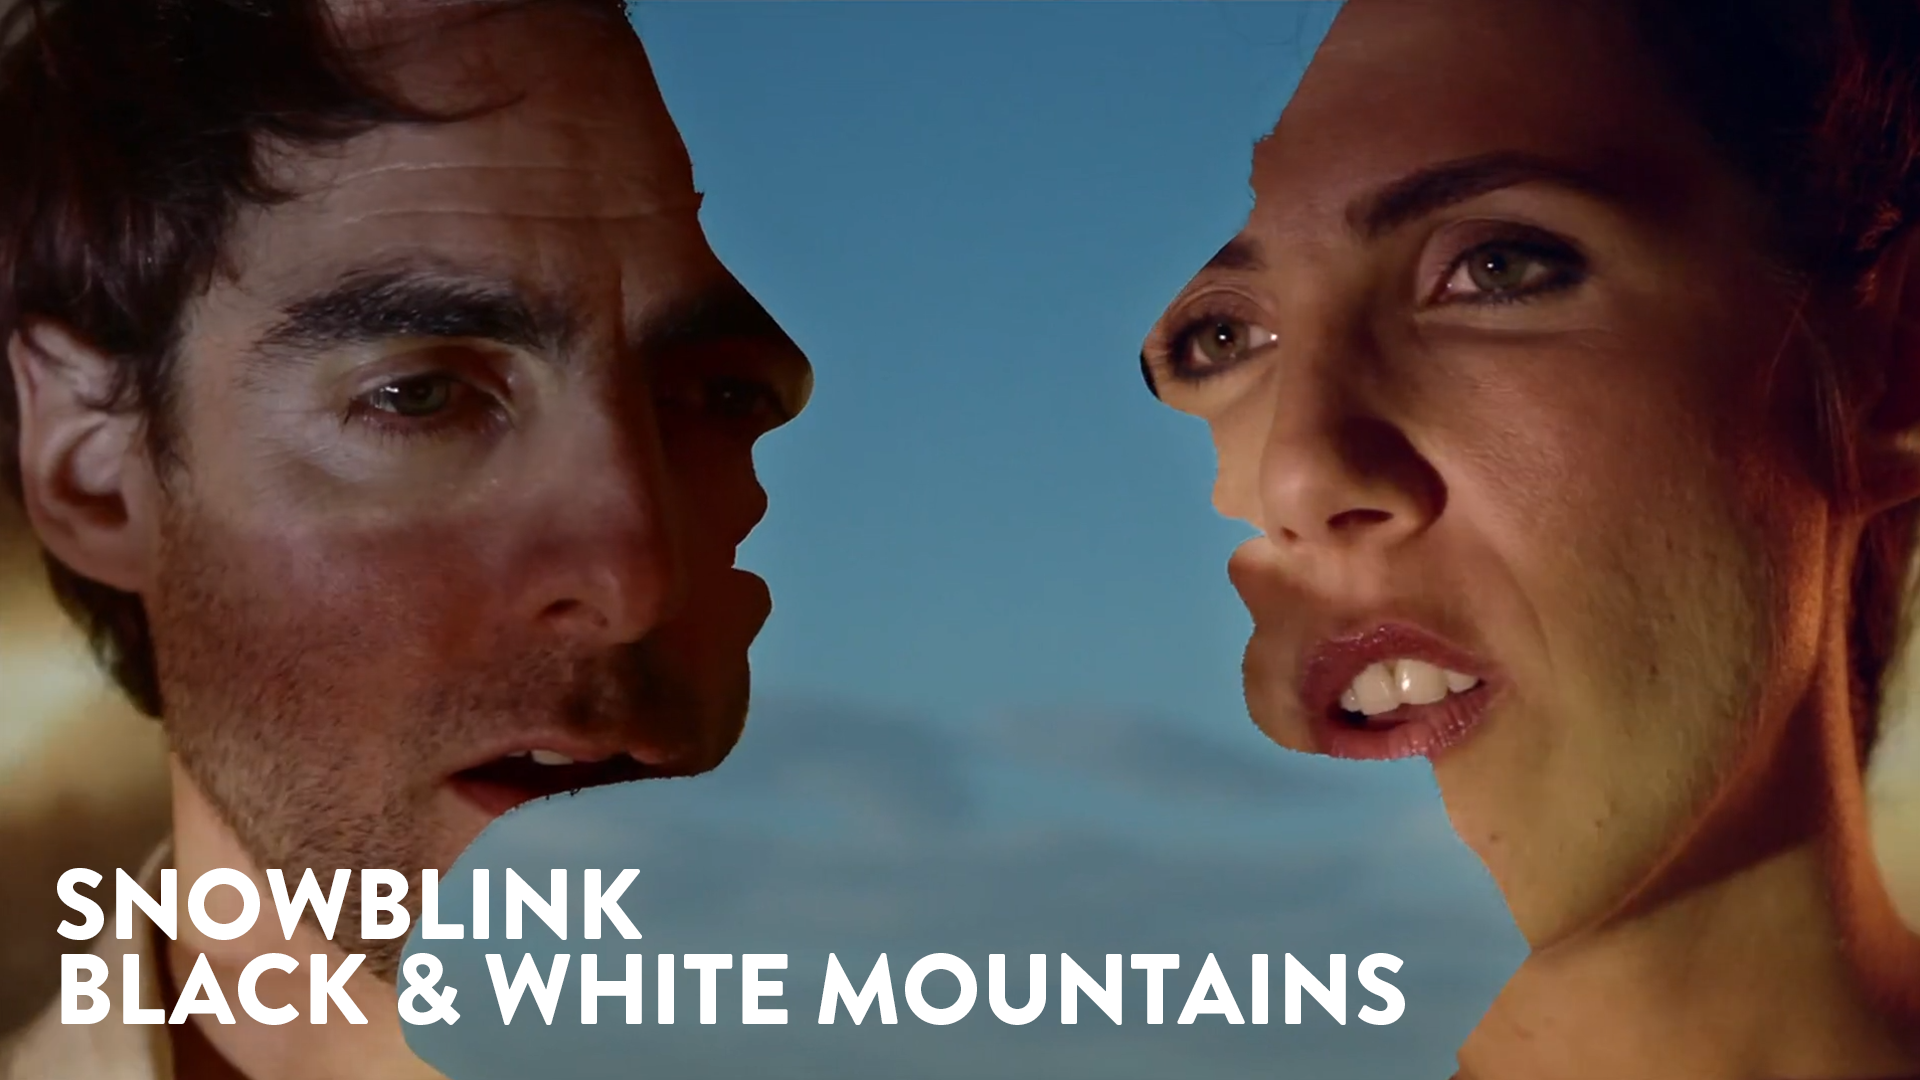 Snowblink - Black & White Mountains